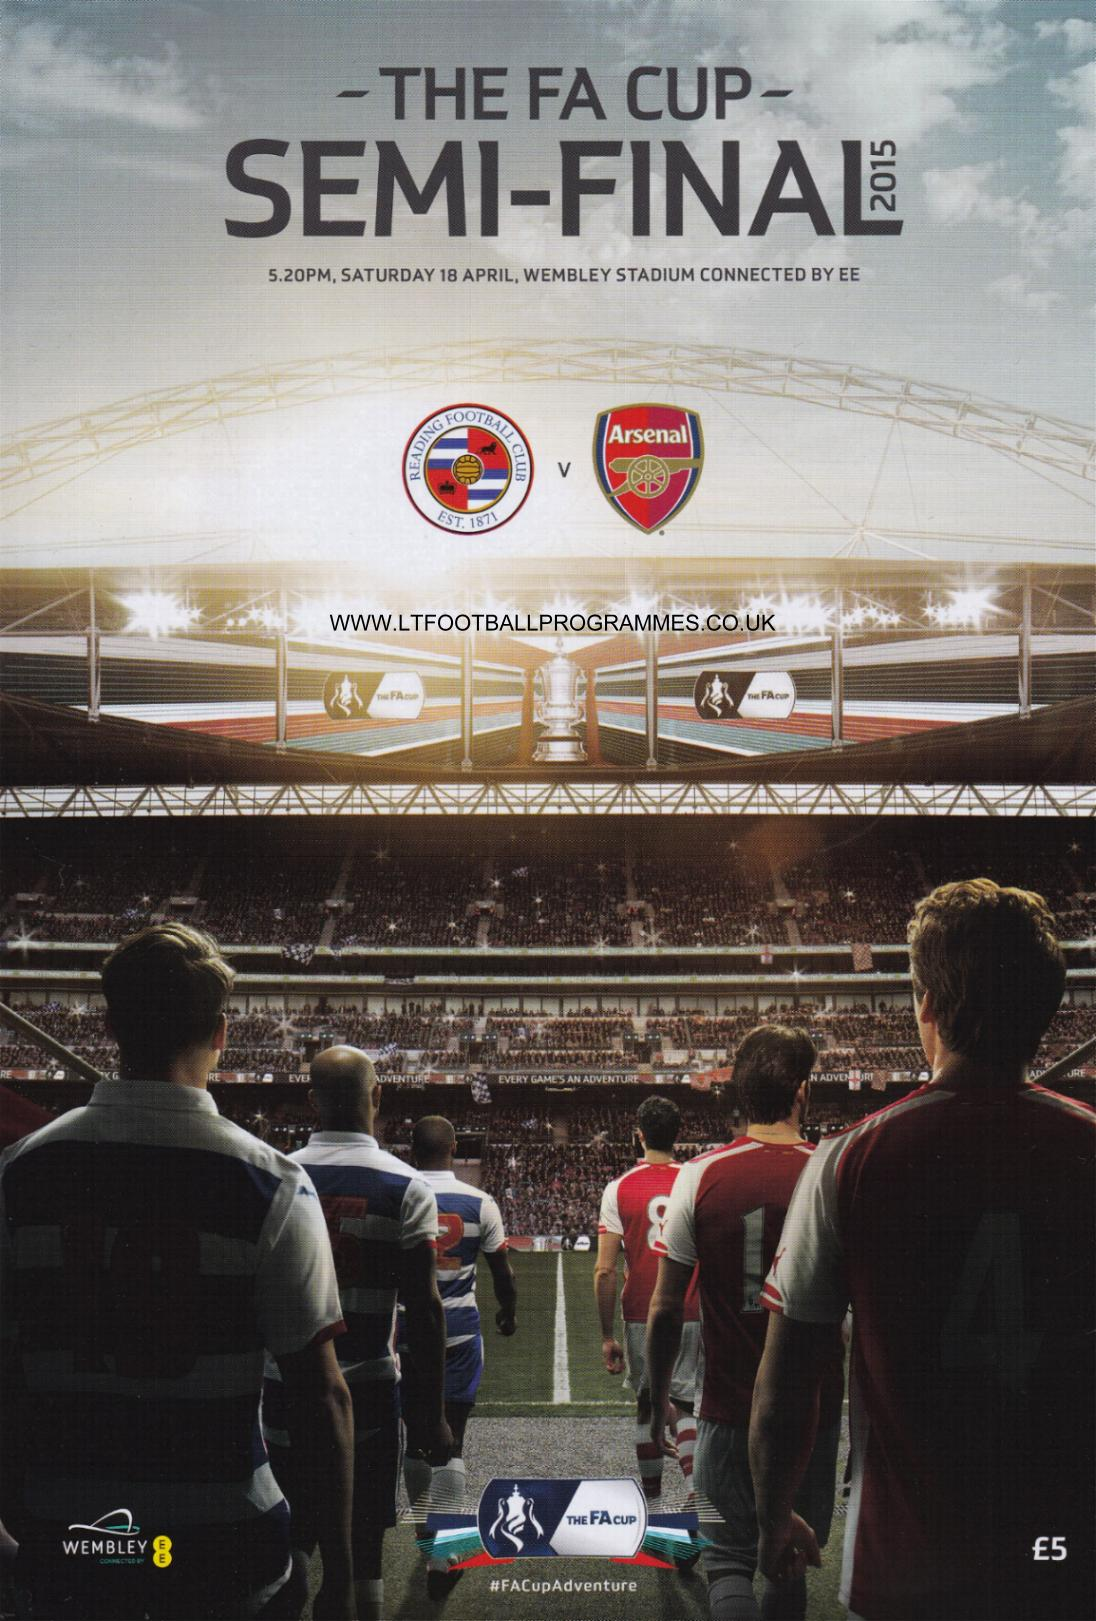 2015 FA CUP SEMI-FINAL - ARSENAL v READING